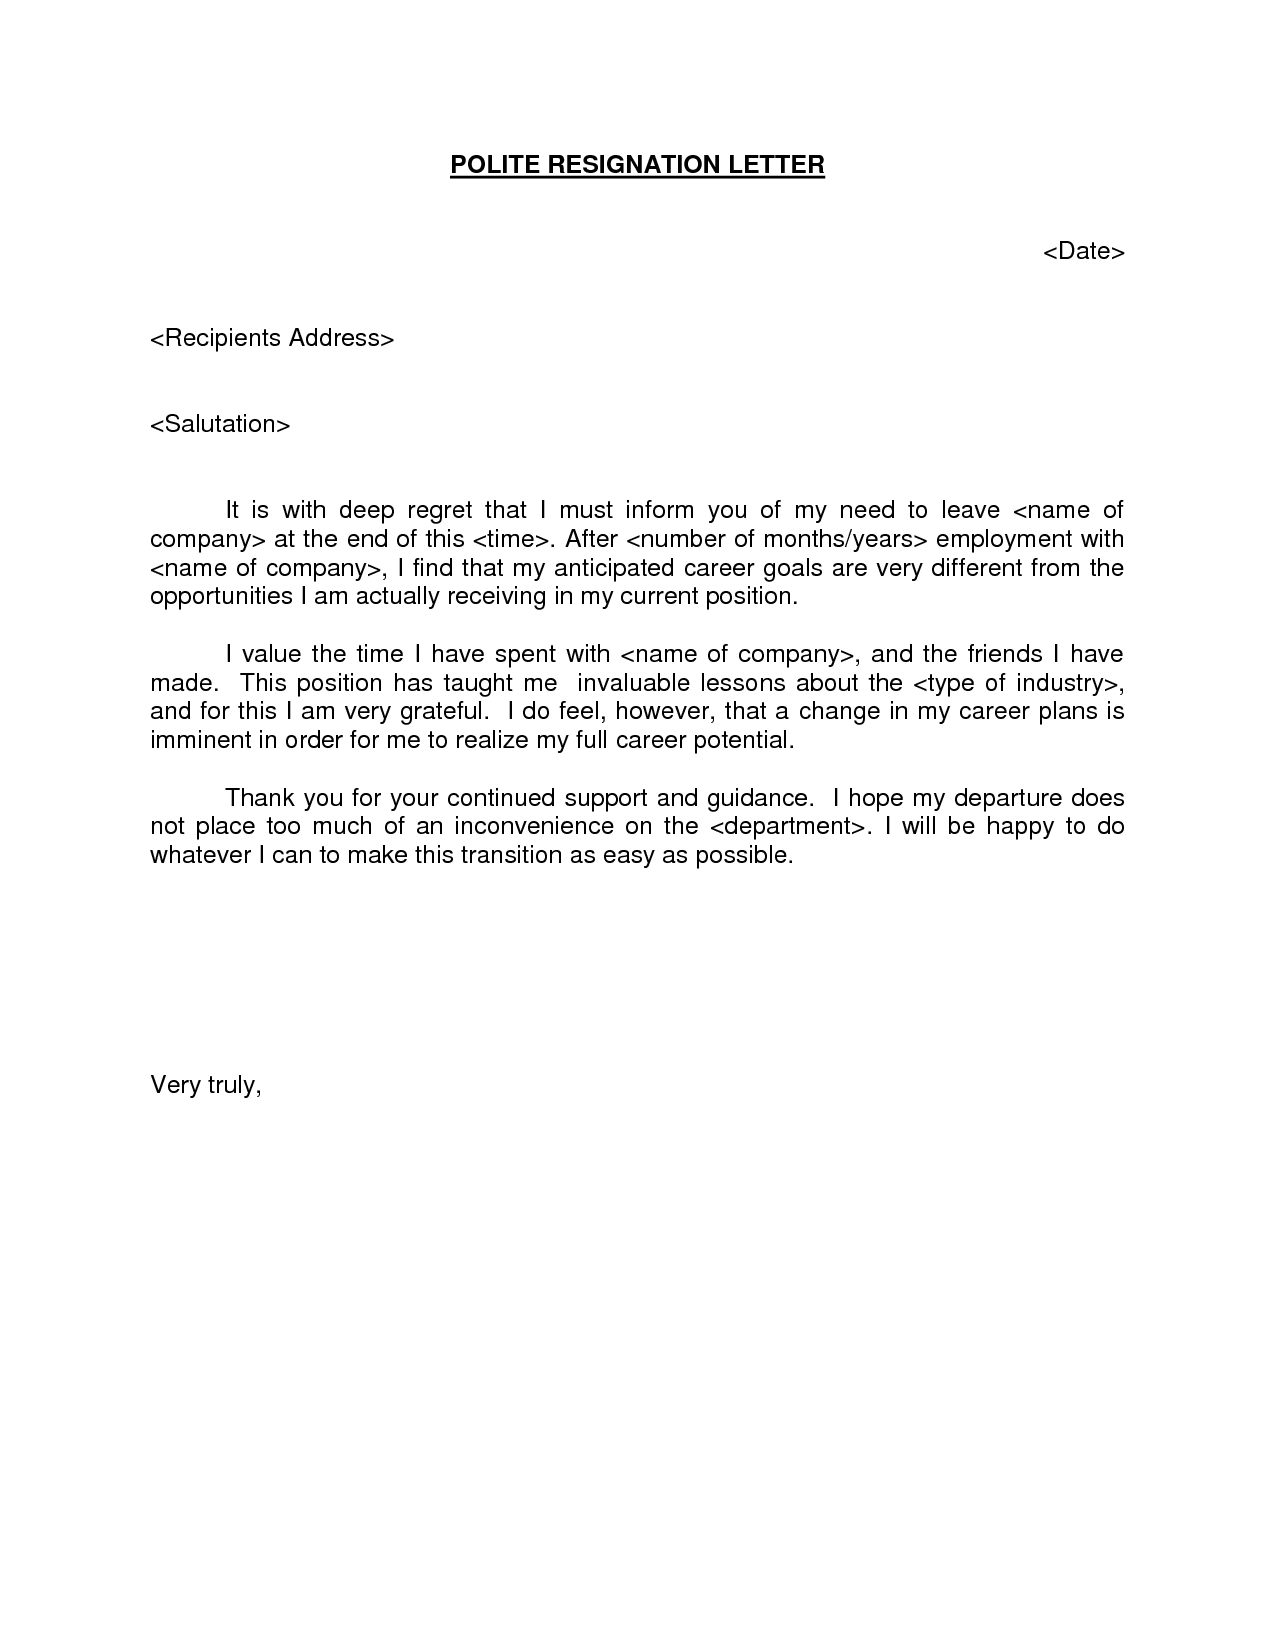 How to write resignation letter heartpulsar how to write resignation letter polite resignation letter bestdealformoneywriting a letter of how to write resignation letter expocarfo